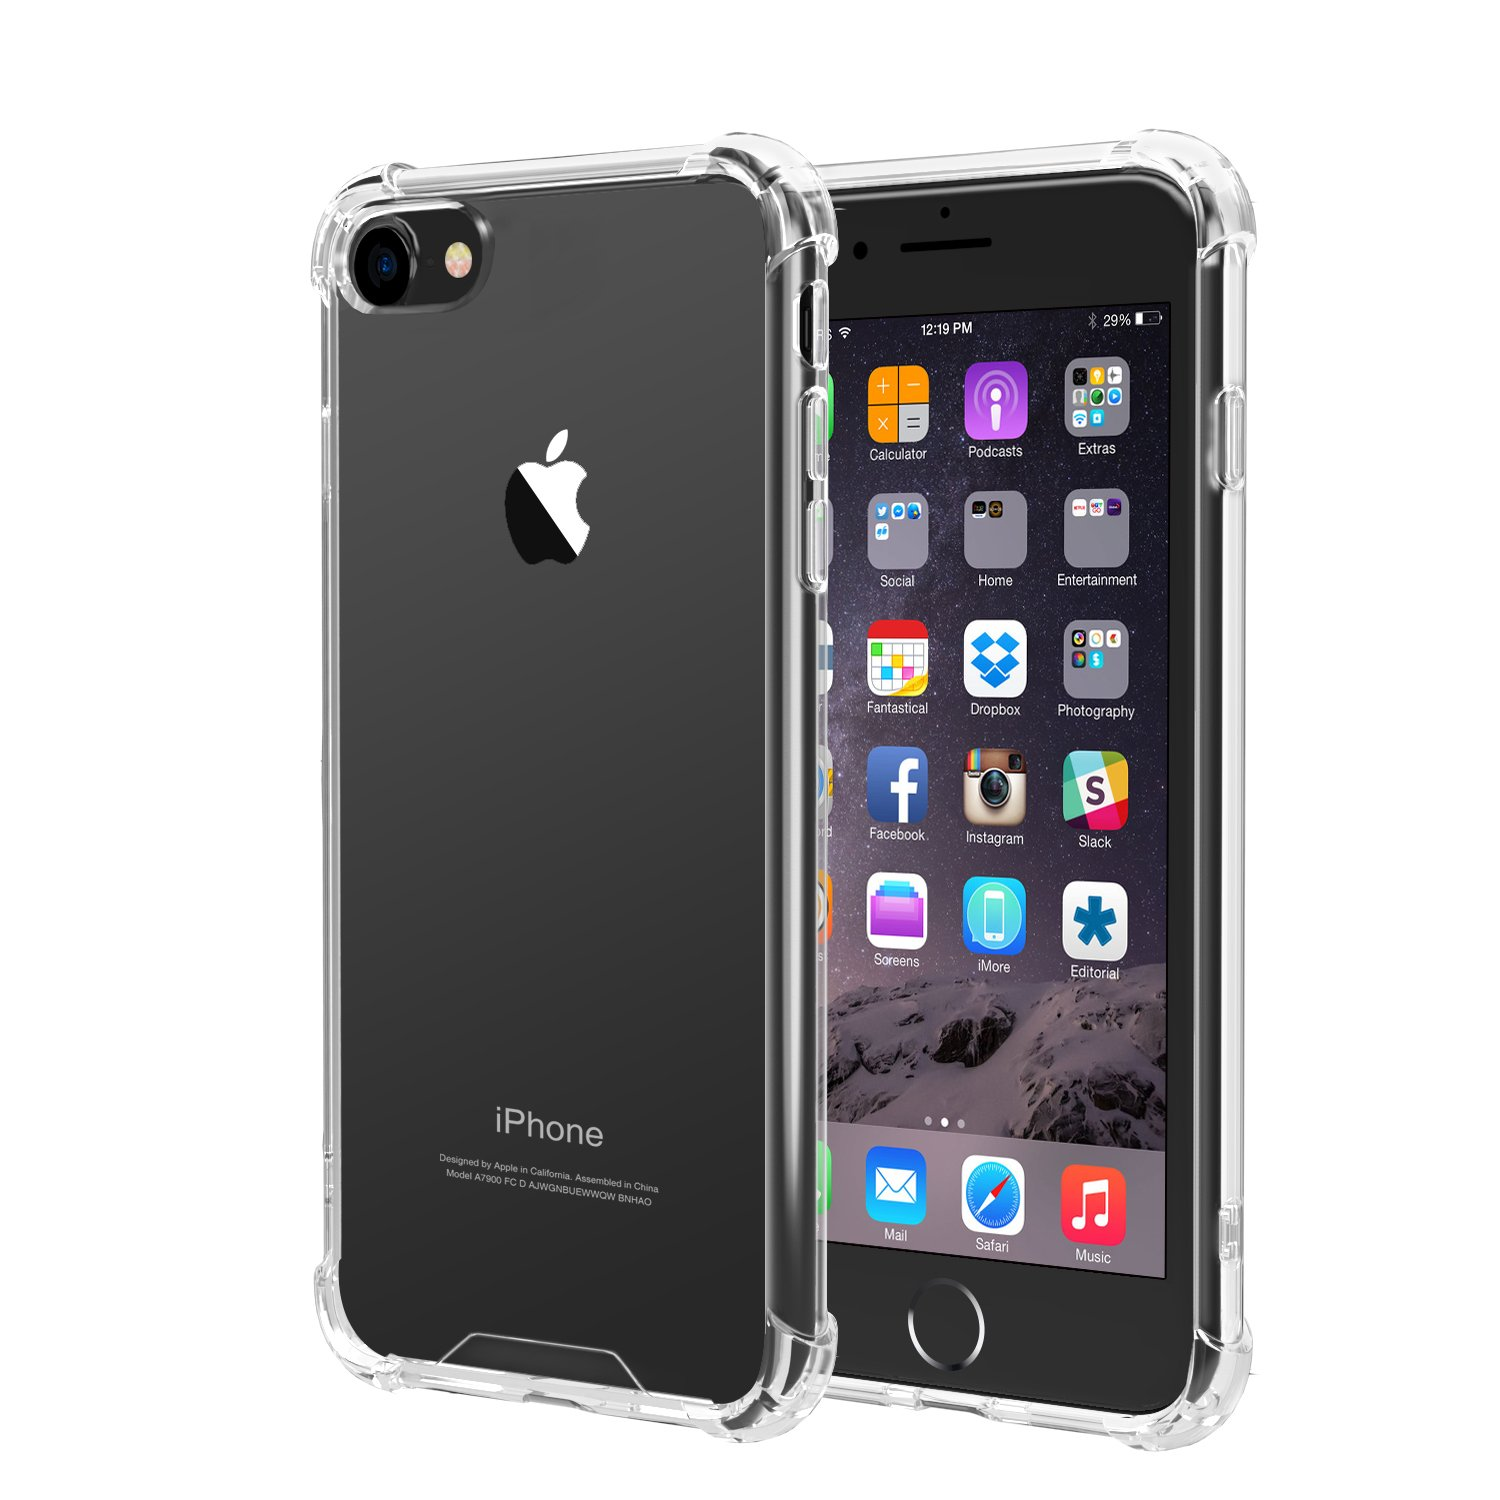 iXCC New iPhone SE Case (2020) iPhone 8 Case iPhone 7 Case, Crystal Clear Hard Cover Case [Shock Absorption] with Soft TPU Bumper for iPhone 8 iPhone 7 (4.7 Inch 2016 Release)- Clear